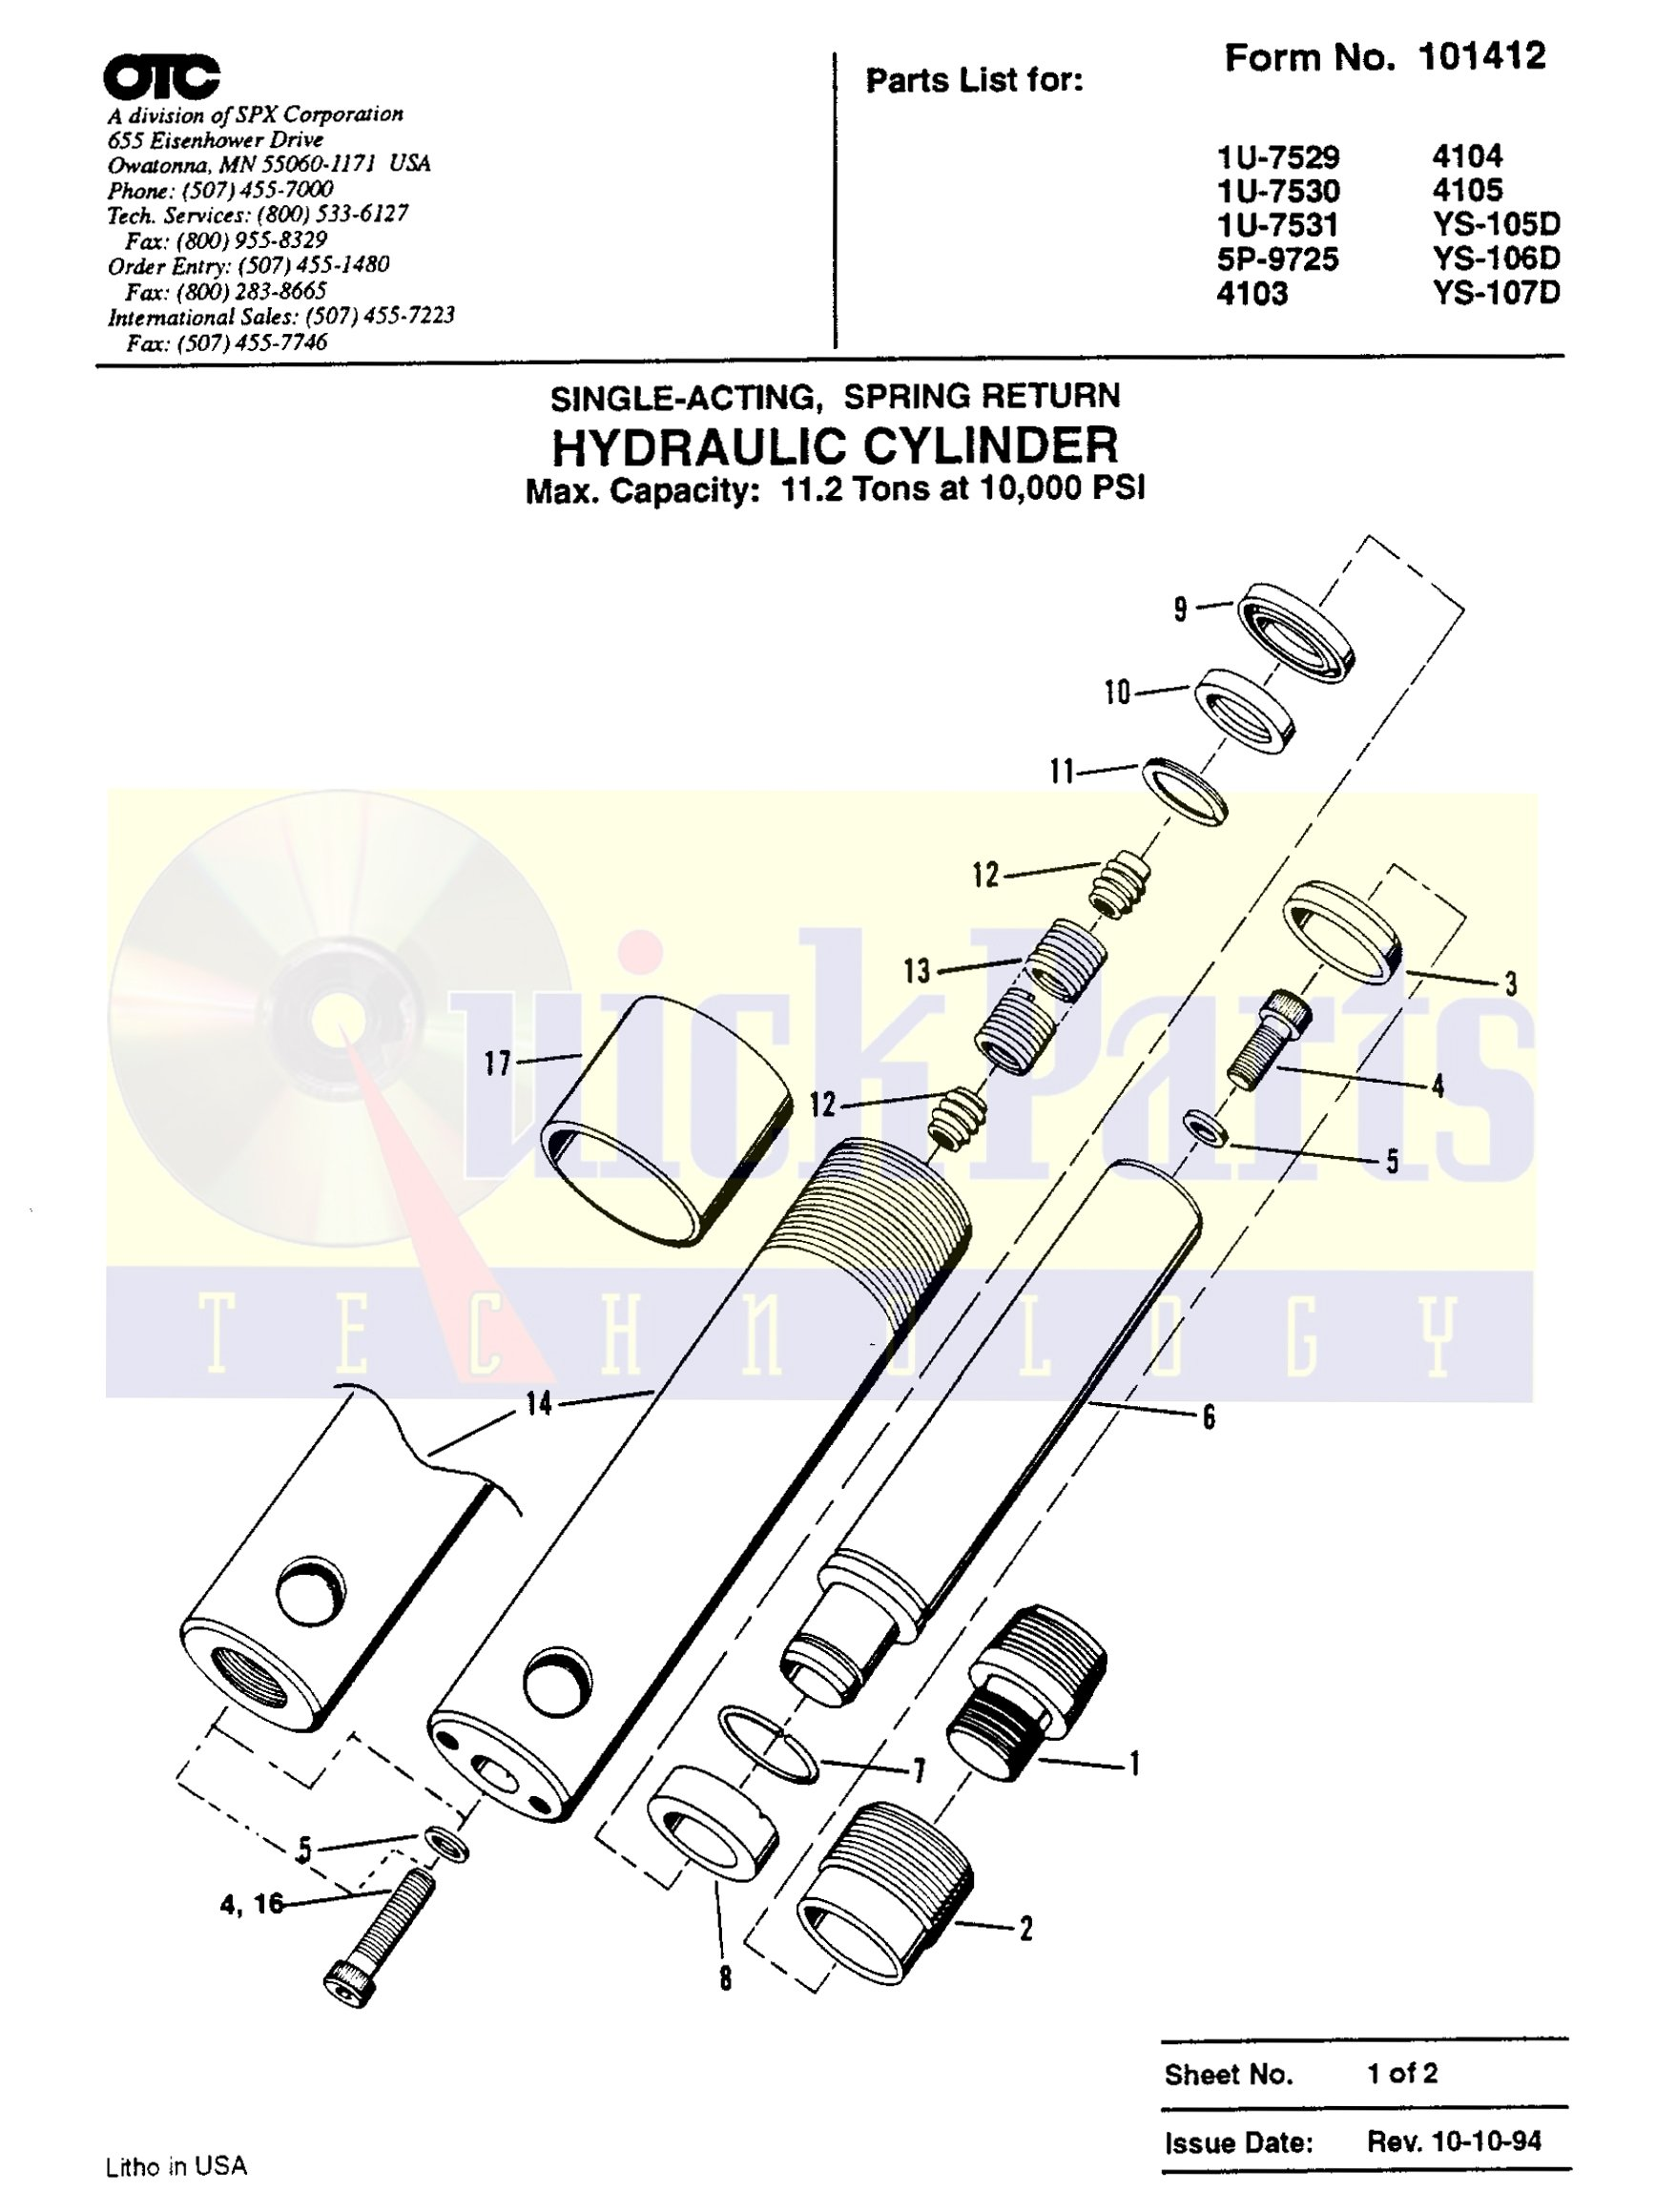 601877 Chief OTC (Power Team / SPX) Cylinder 11.2 Ton Seal Replacement Kit